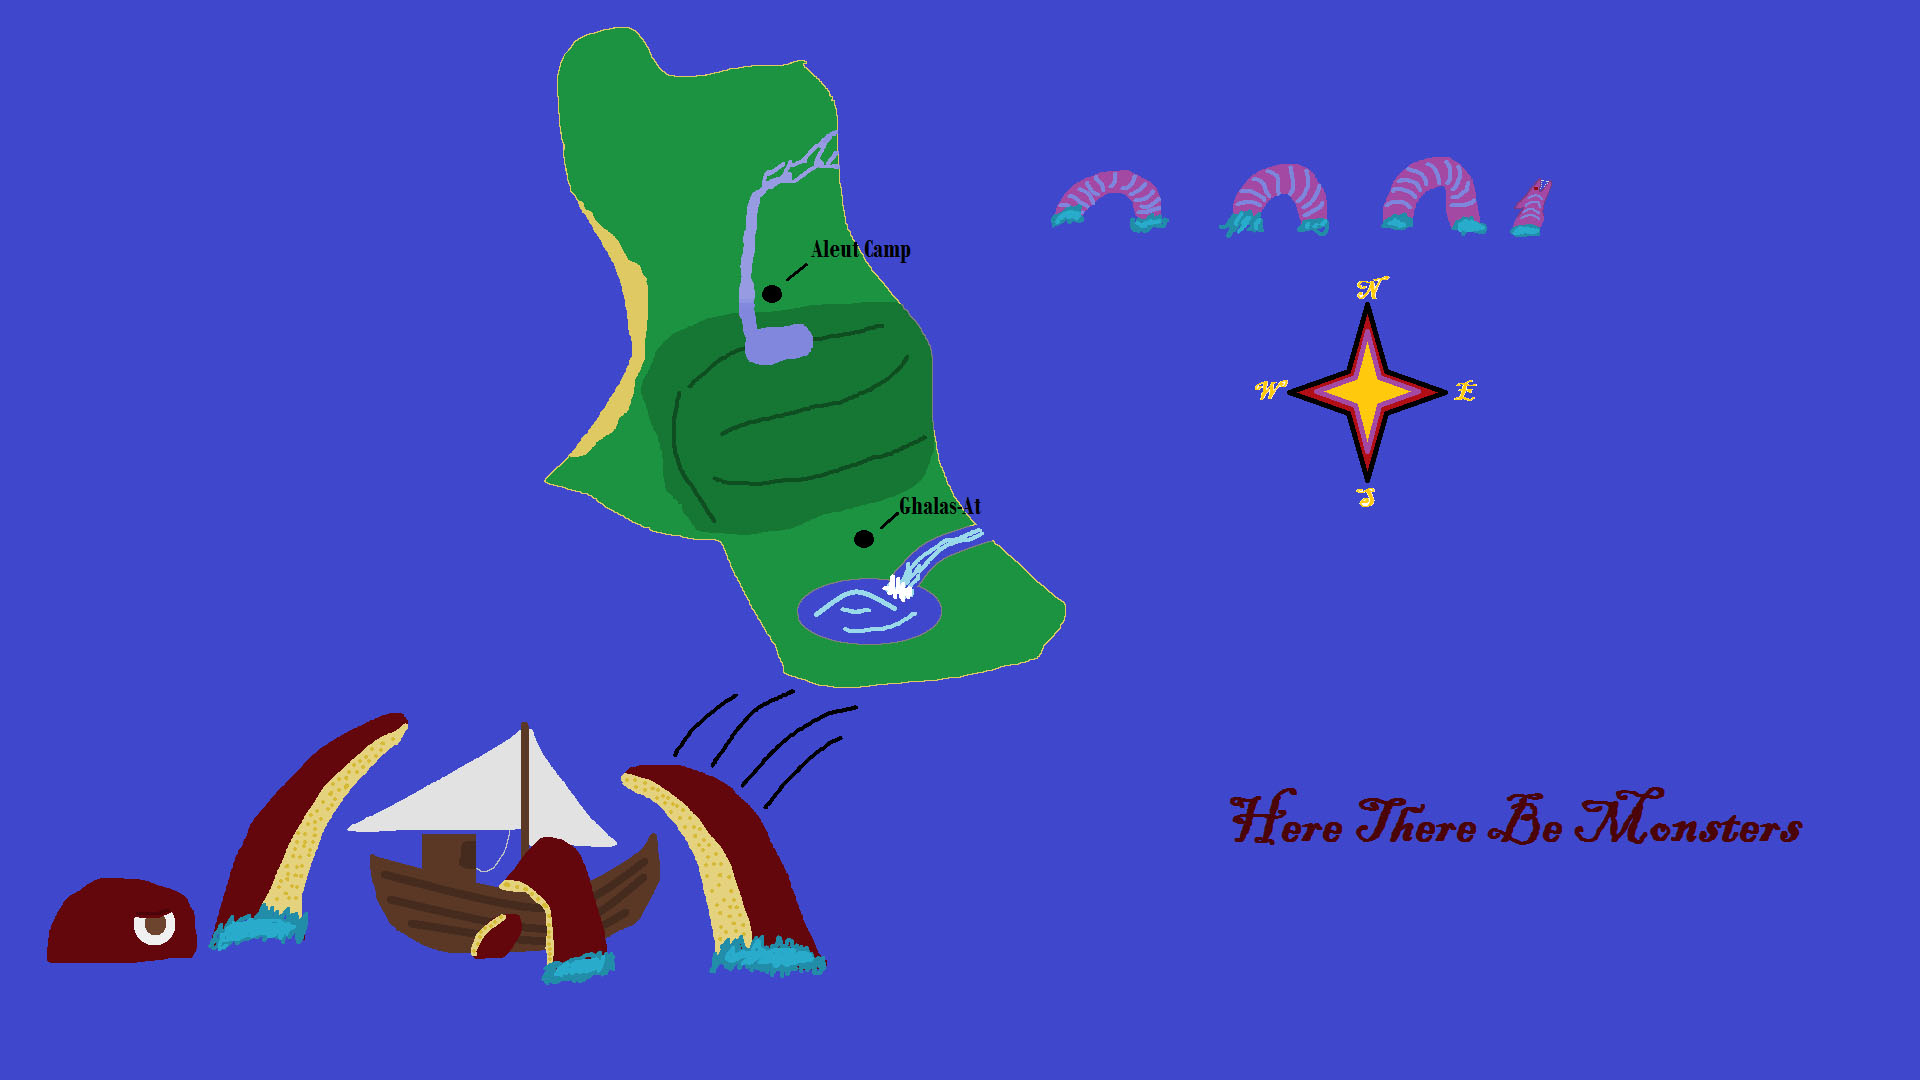 burnettsahoy tommy s map of the island of the blue dolphins for school the sea monsters were not part of the assignment